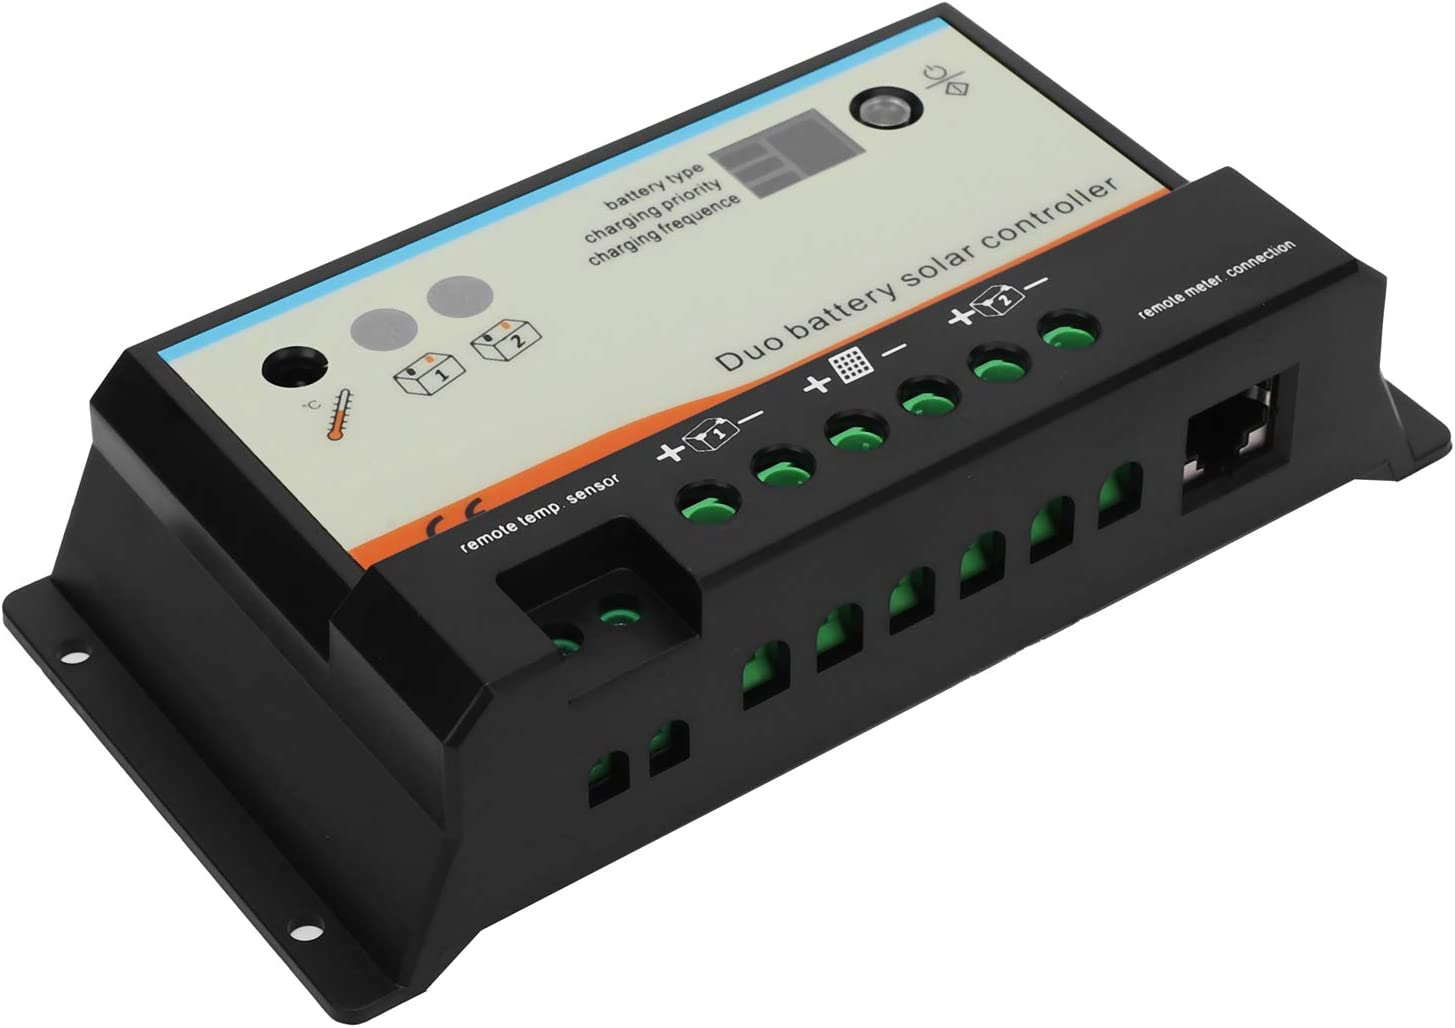 Tgoon Dual Battery Solar Award-winning Charlotte Mall store Charge Controller Control